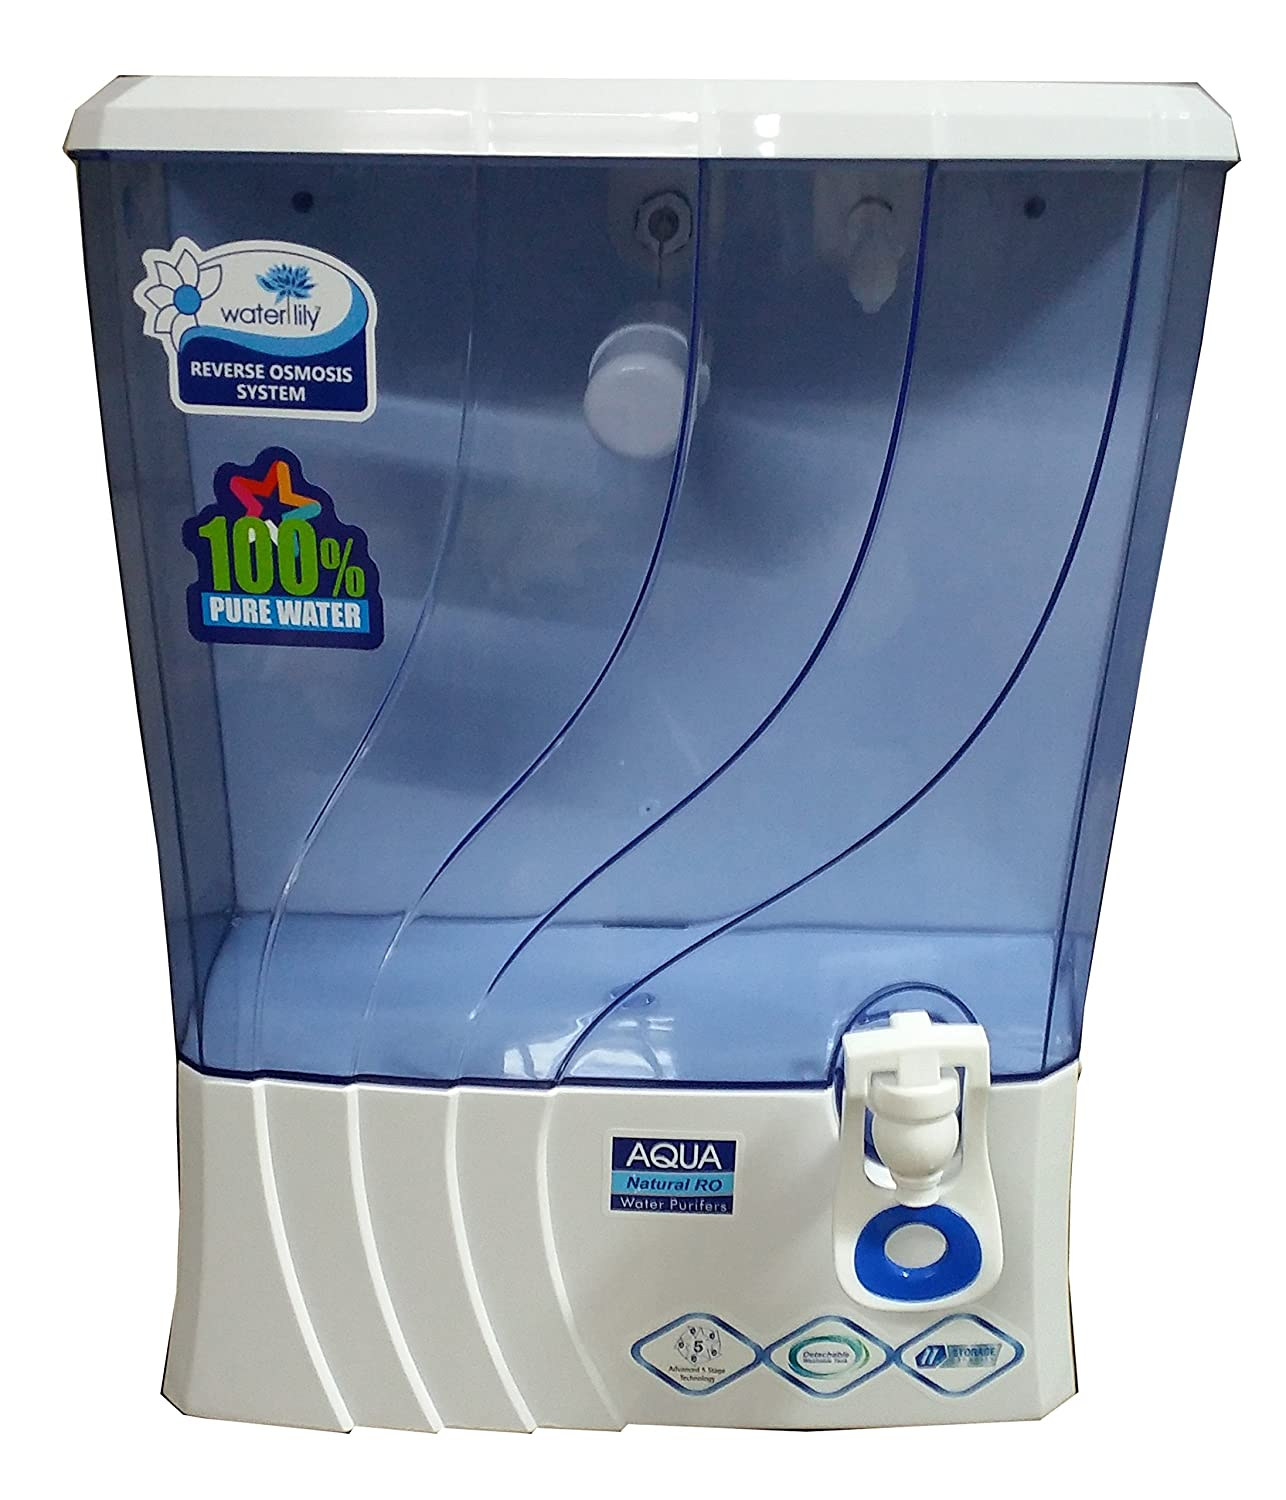 Waterlily Domestic R.O. System - 10 Ltr: Amazon.in: Home & Kitchen